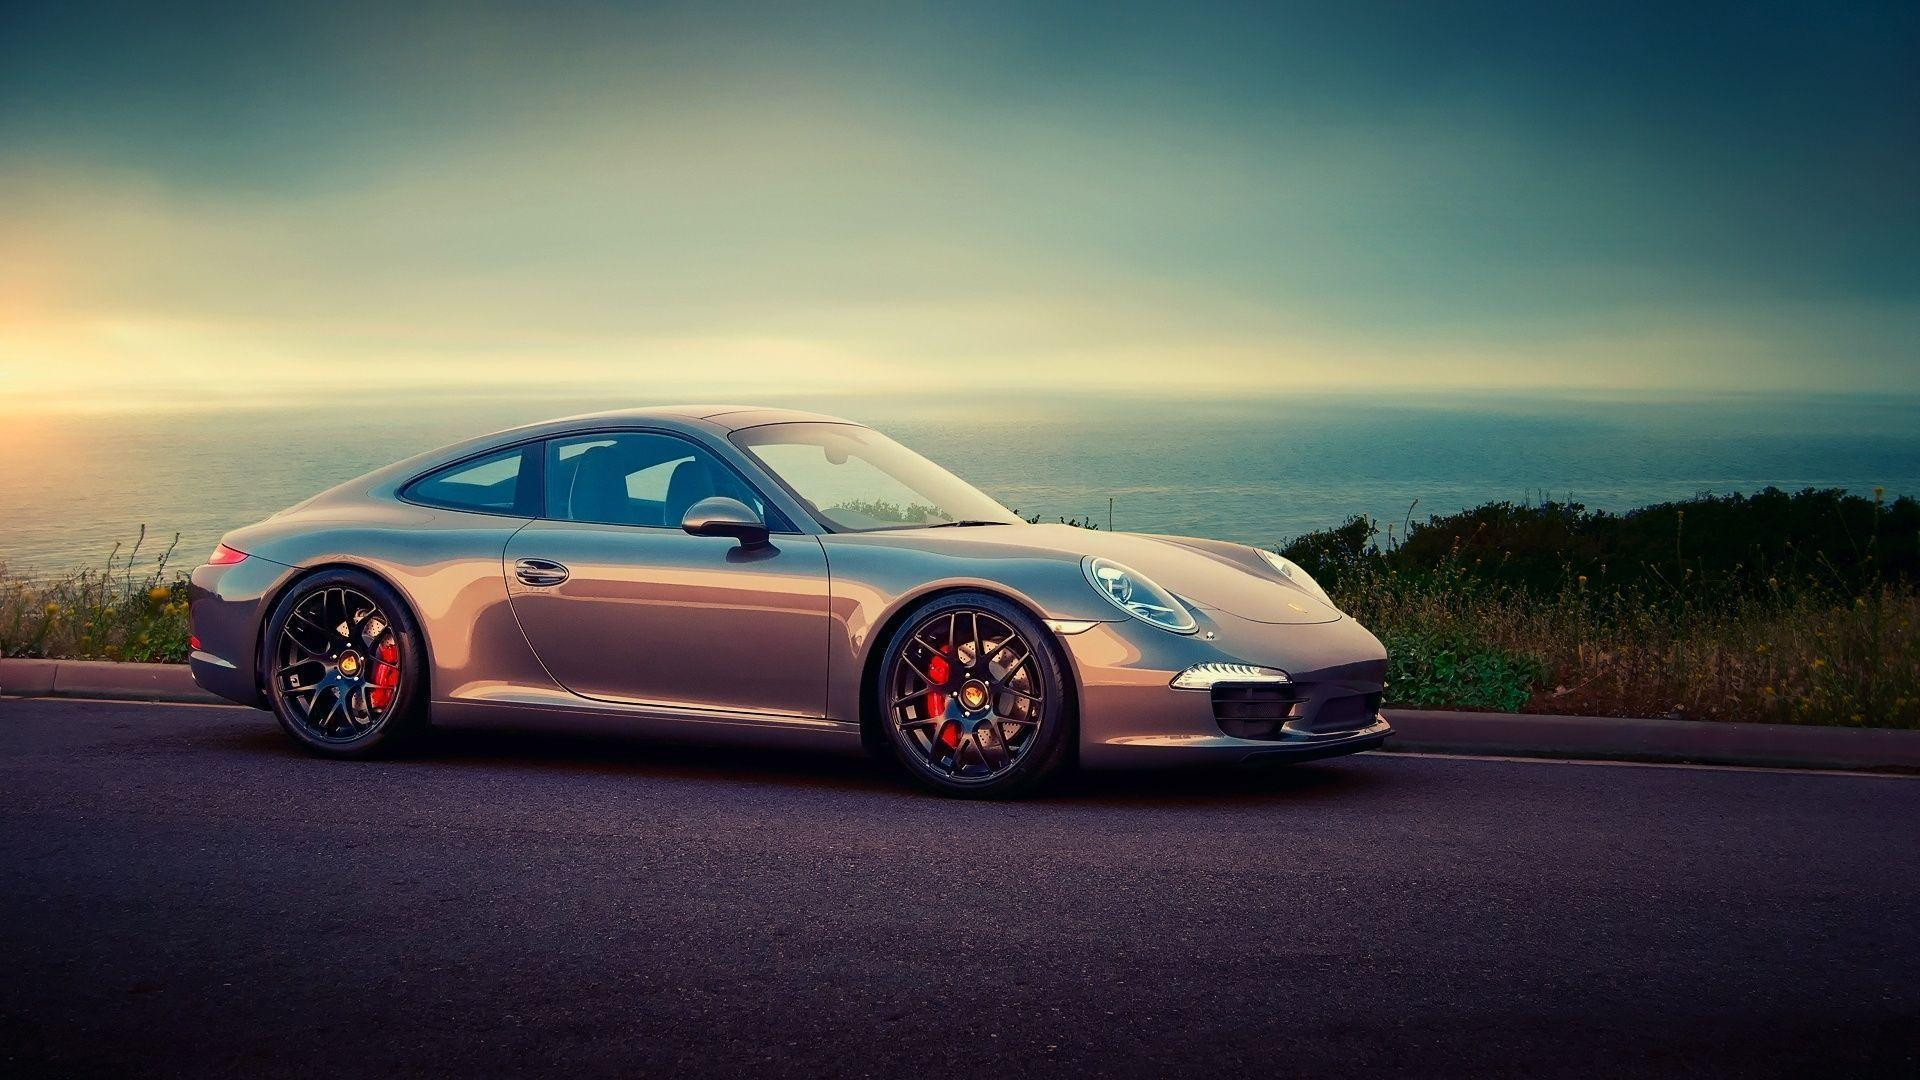 Download Awesome Porsche Wallpapers 14381 1920x1080 px High